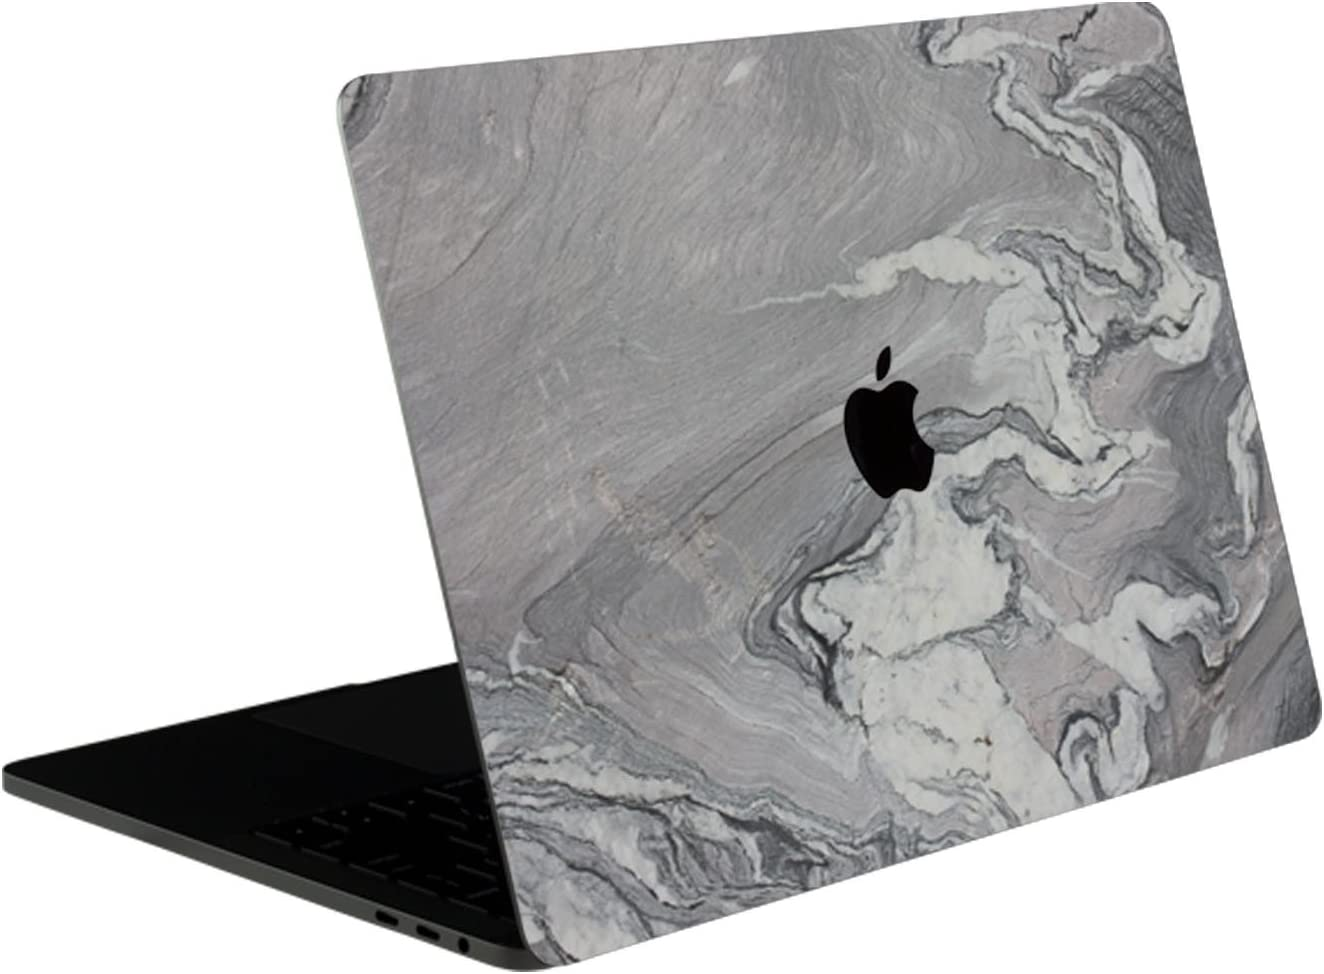 SOJITEK Silver Gray Marble Stone Texture 4-in-1, Full-Size 360° Protector Skin Decals Sticker MacBook Pro 13